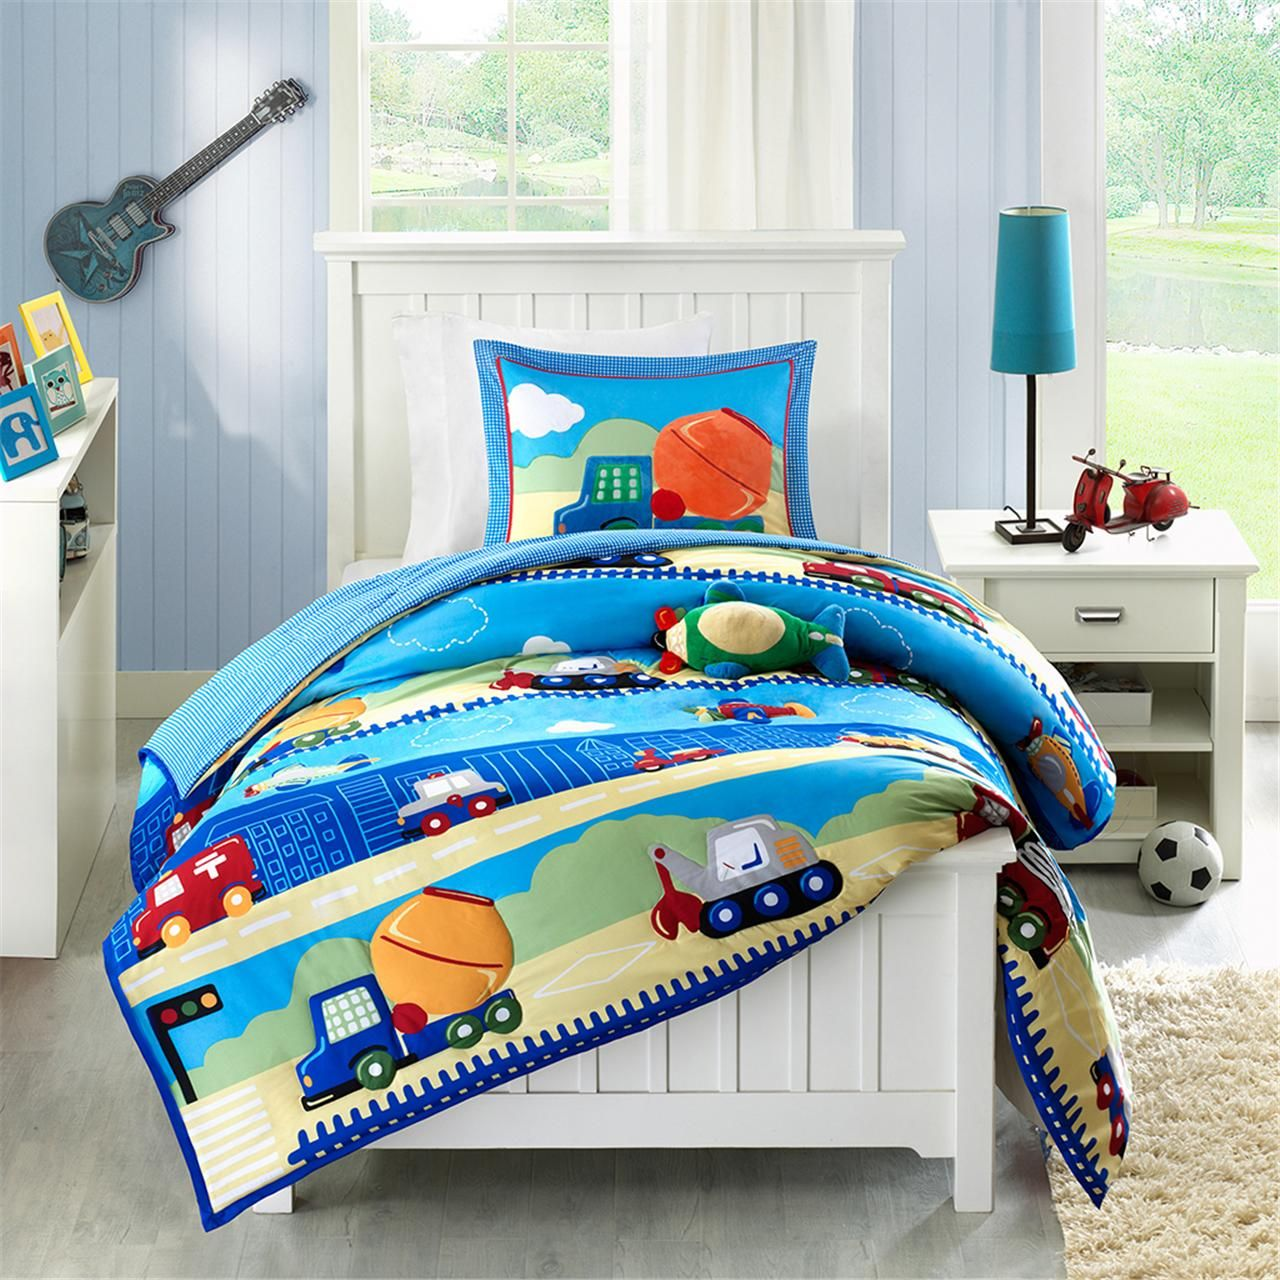 for sheets size set sets bedding twin boy queen improveme comforter home cars check cover bed kids boys